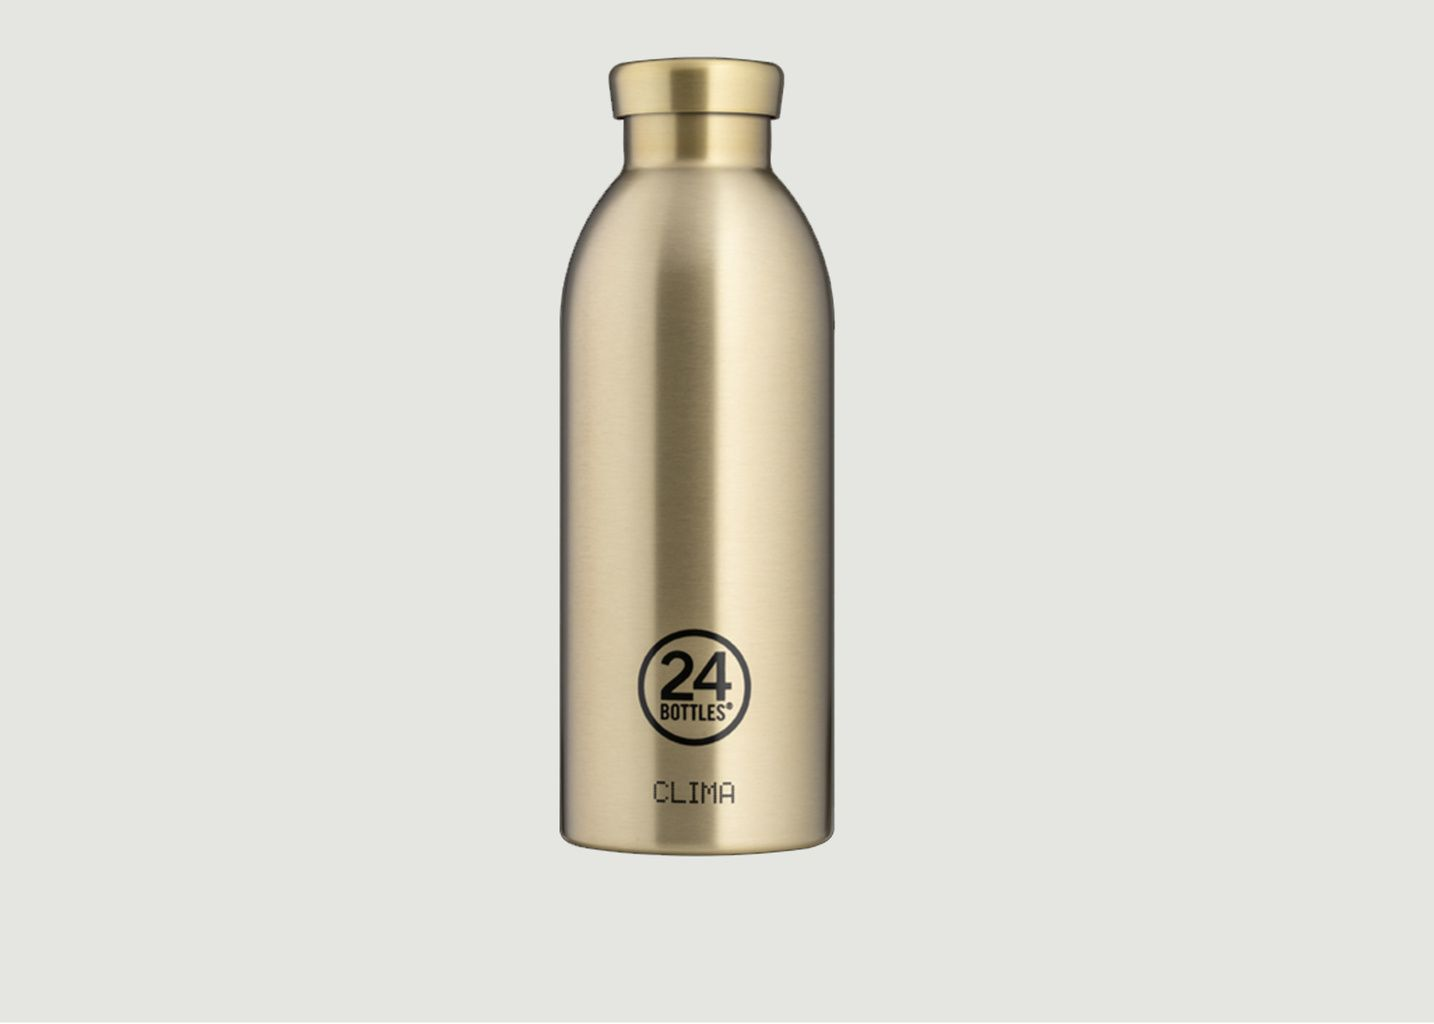 Clima Bottle 500ml Isotherme Prosecco Gold - 24 Bottles